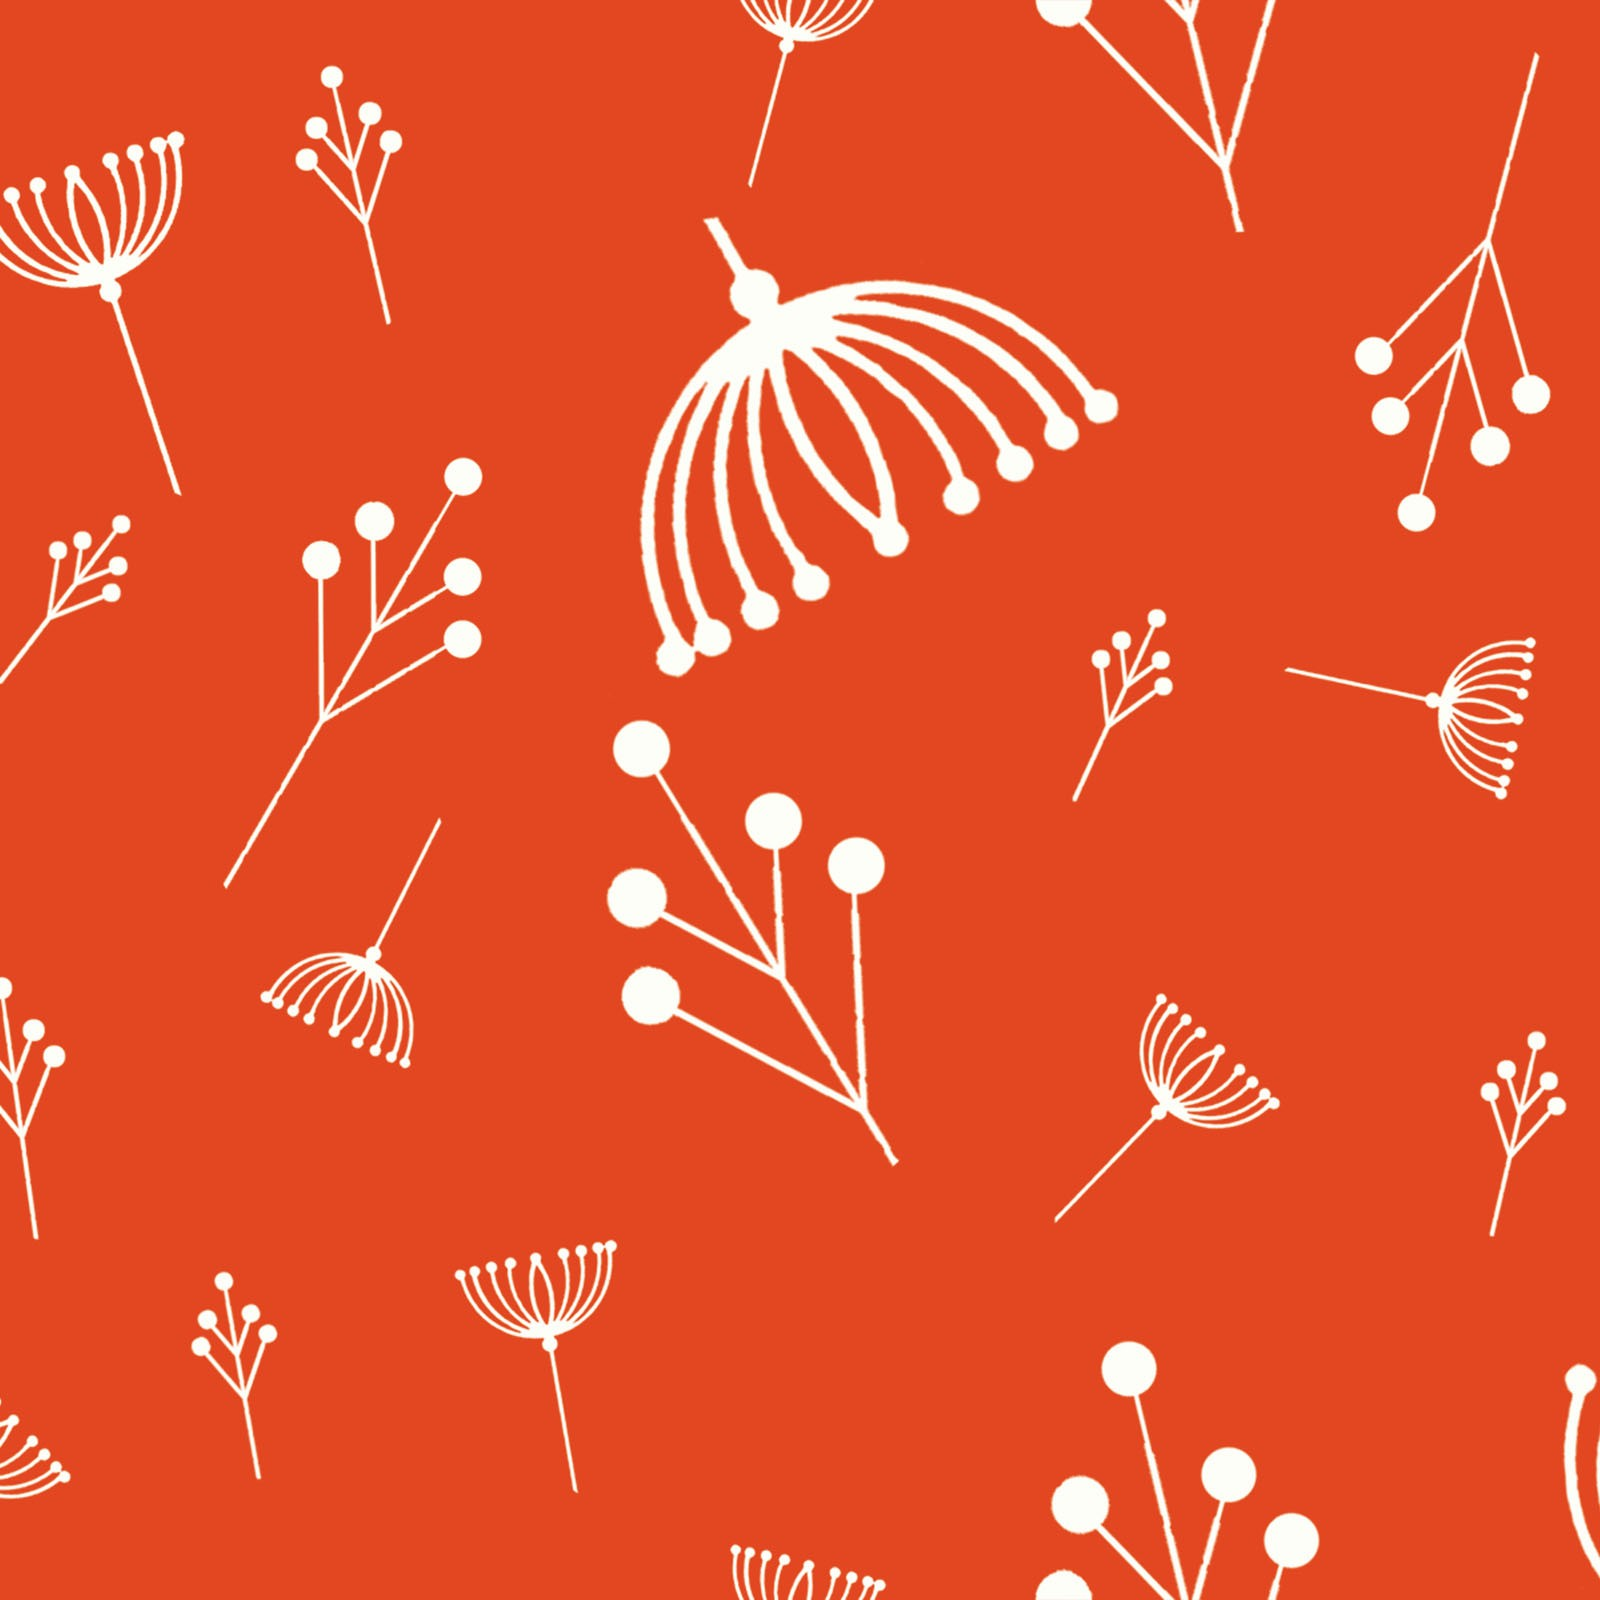 Twigs in Tomato (Poplin Fabric) by Charley Harper from the Best of Charley Harper collection for Birch #CH87Tomato